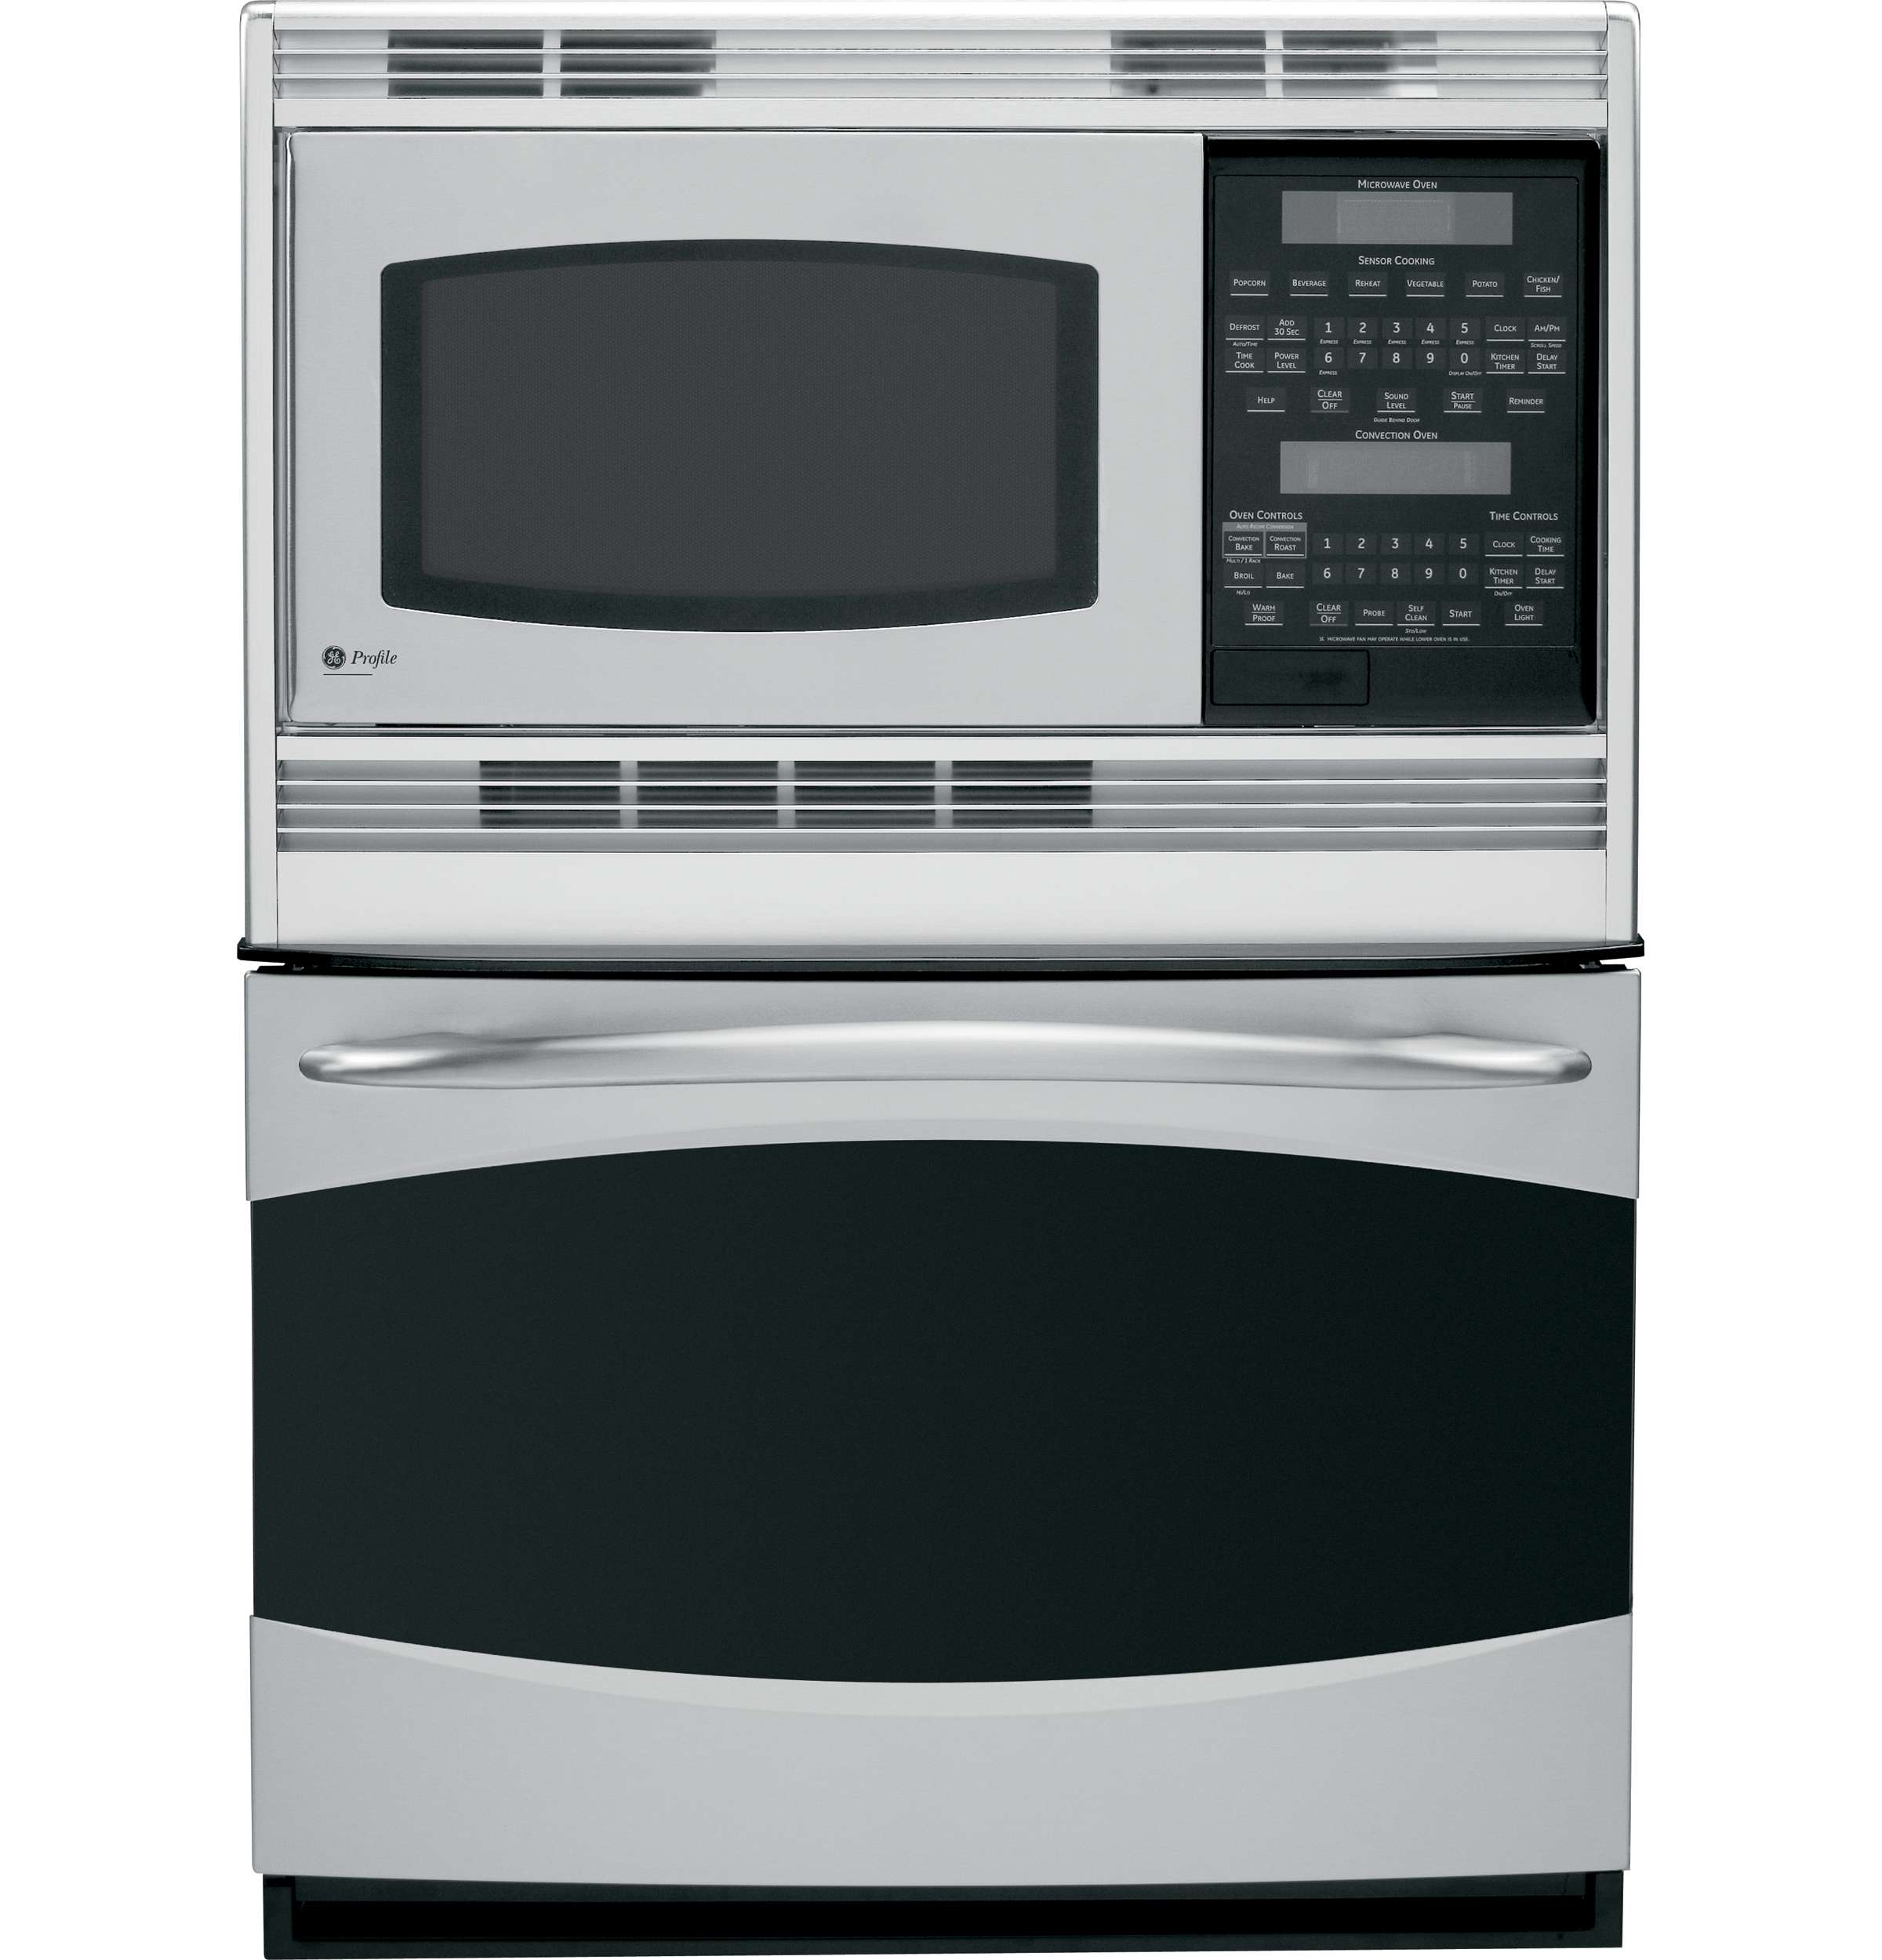 GE Profile 30 In. Stainless Steel Built-In Combination Oven - PT970SRSS  Image 3